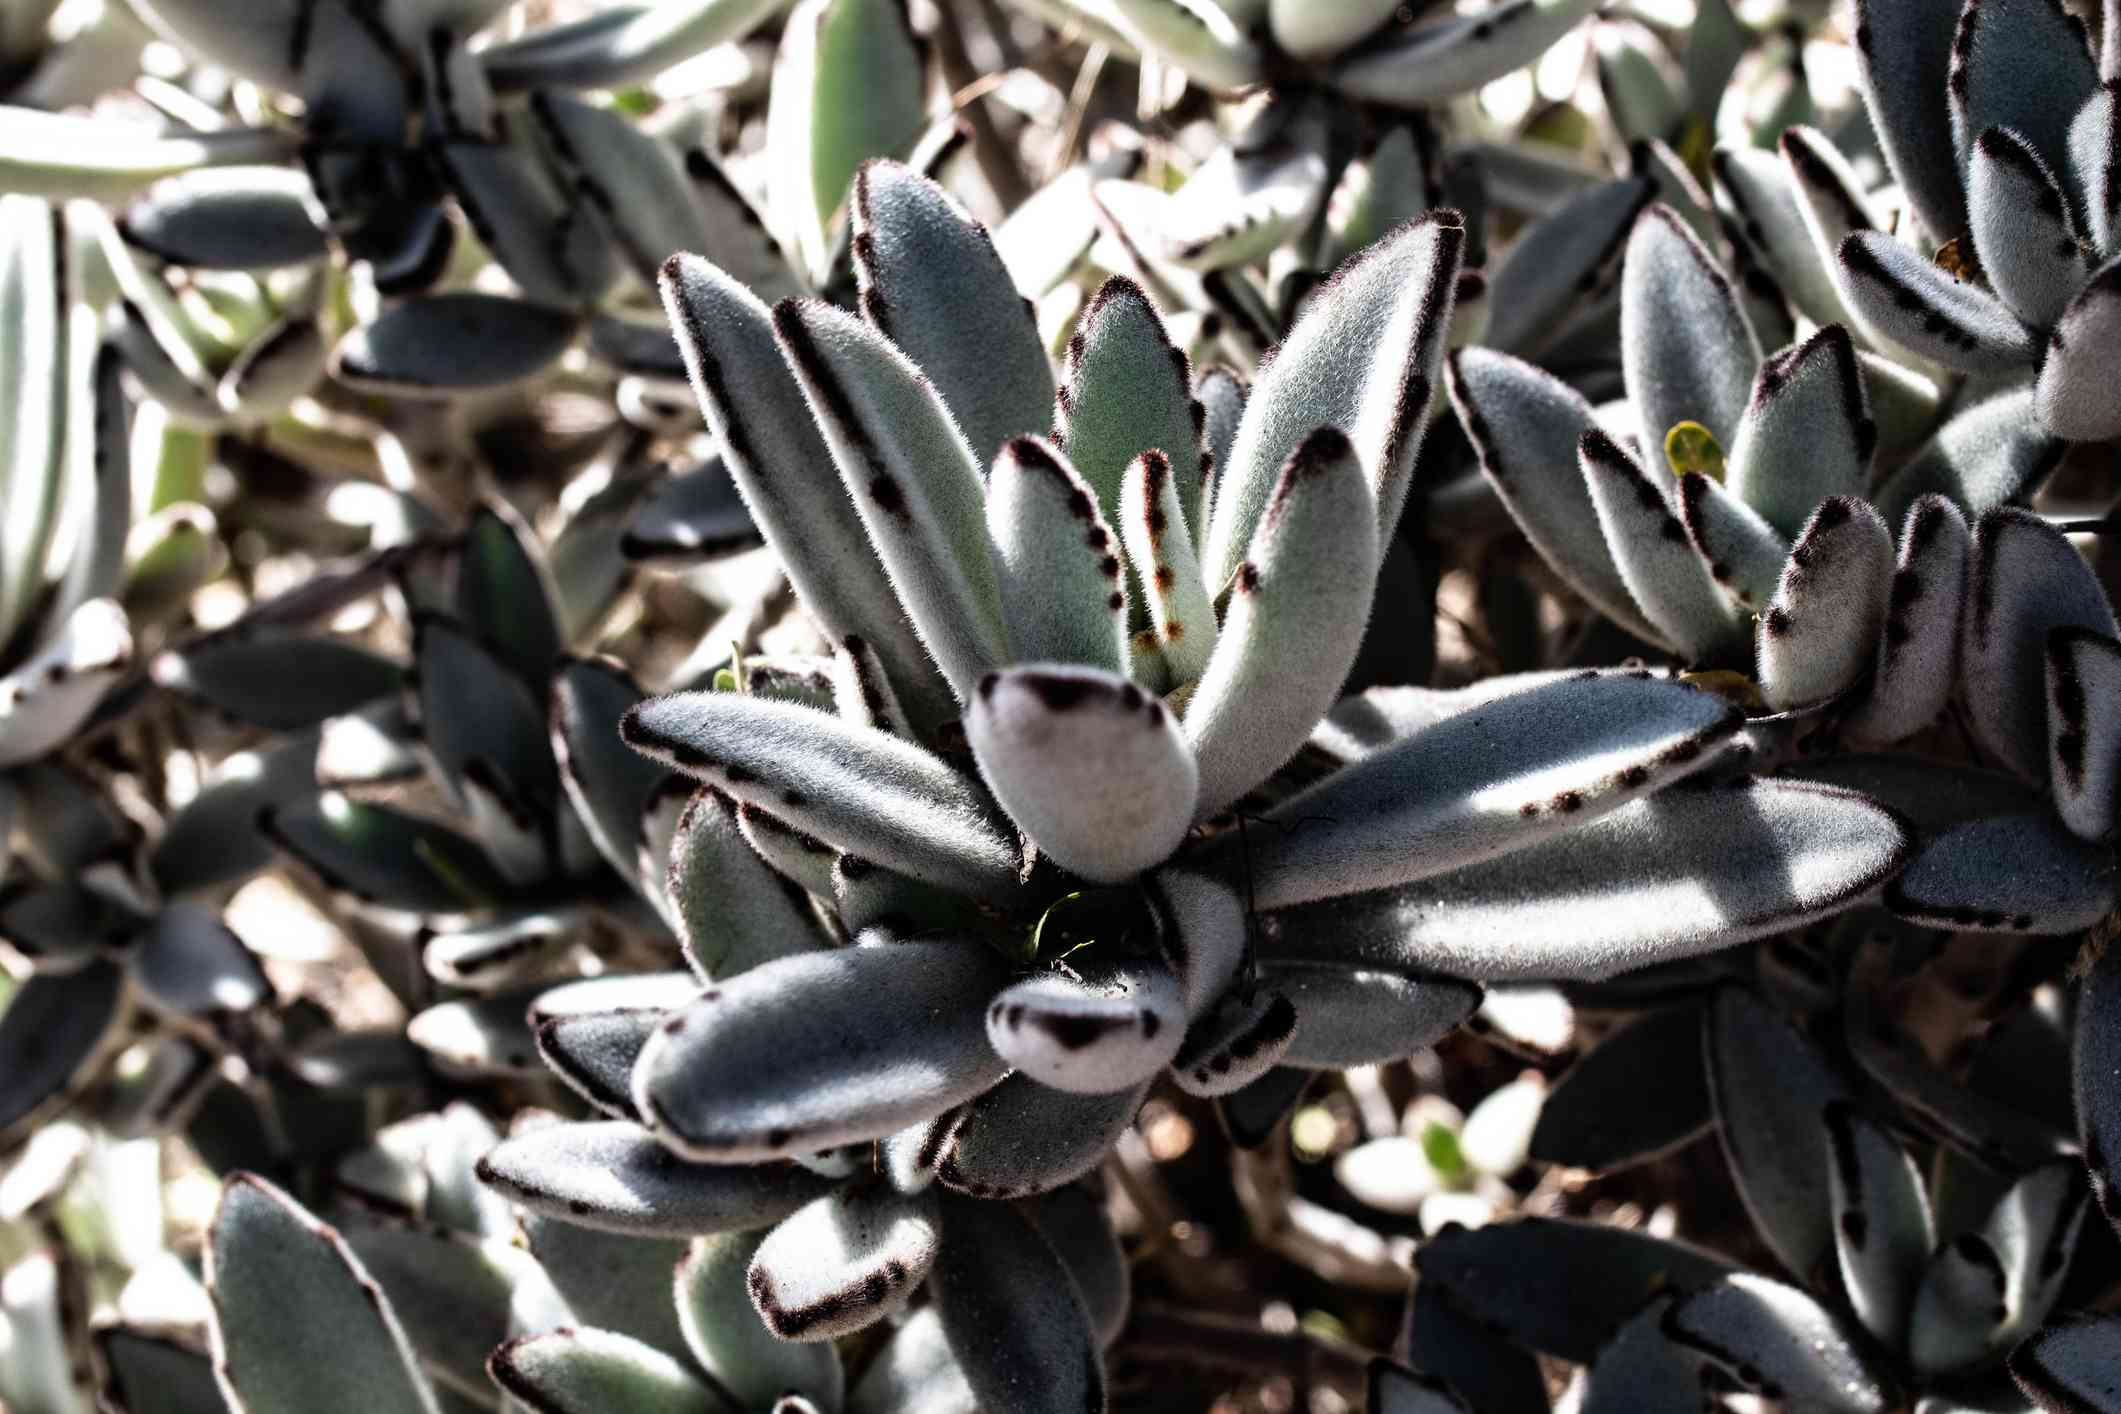 Chocolate soldier plant (Kalanchoe tomentosa) from Madagascar.